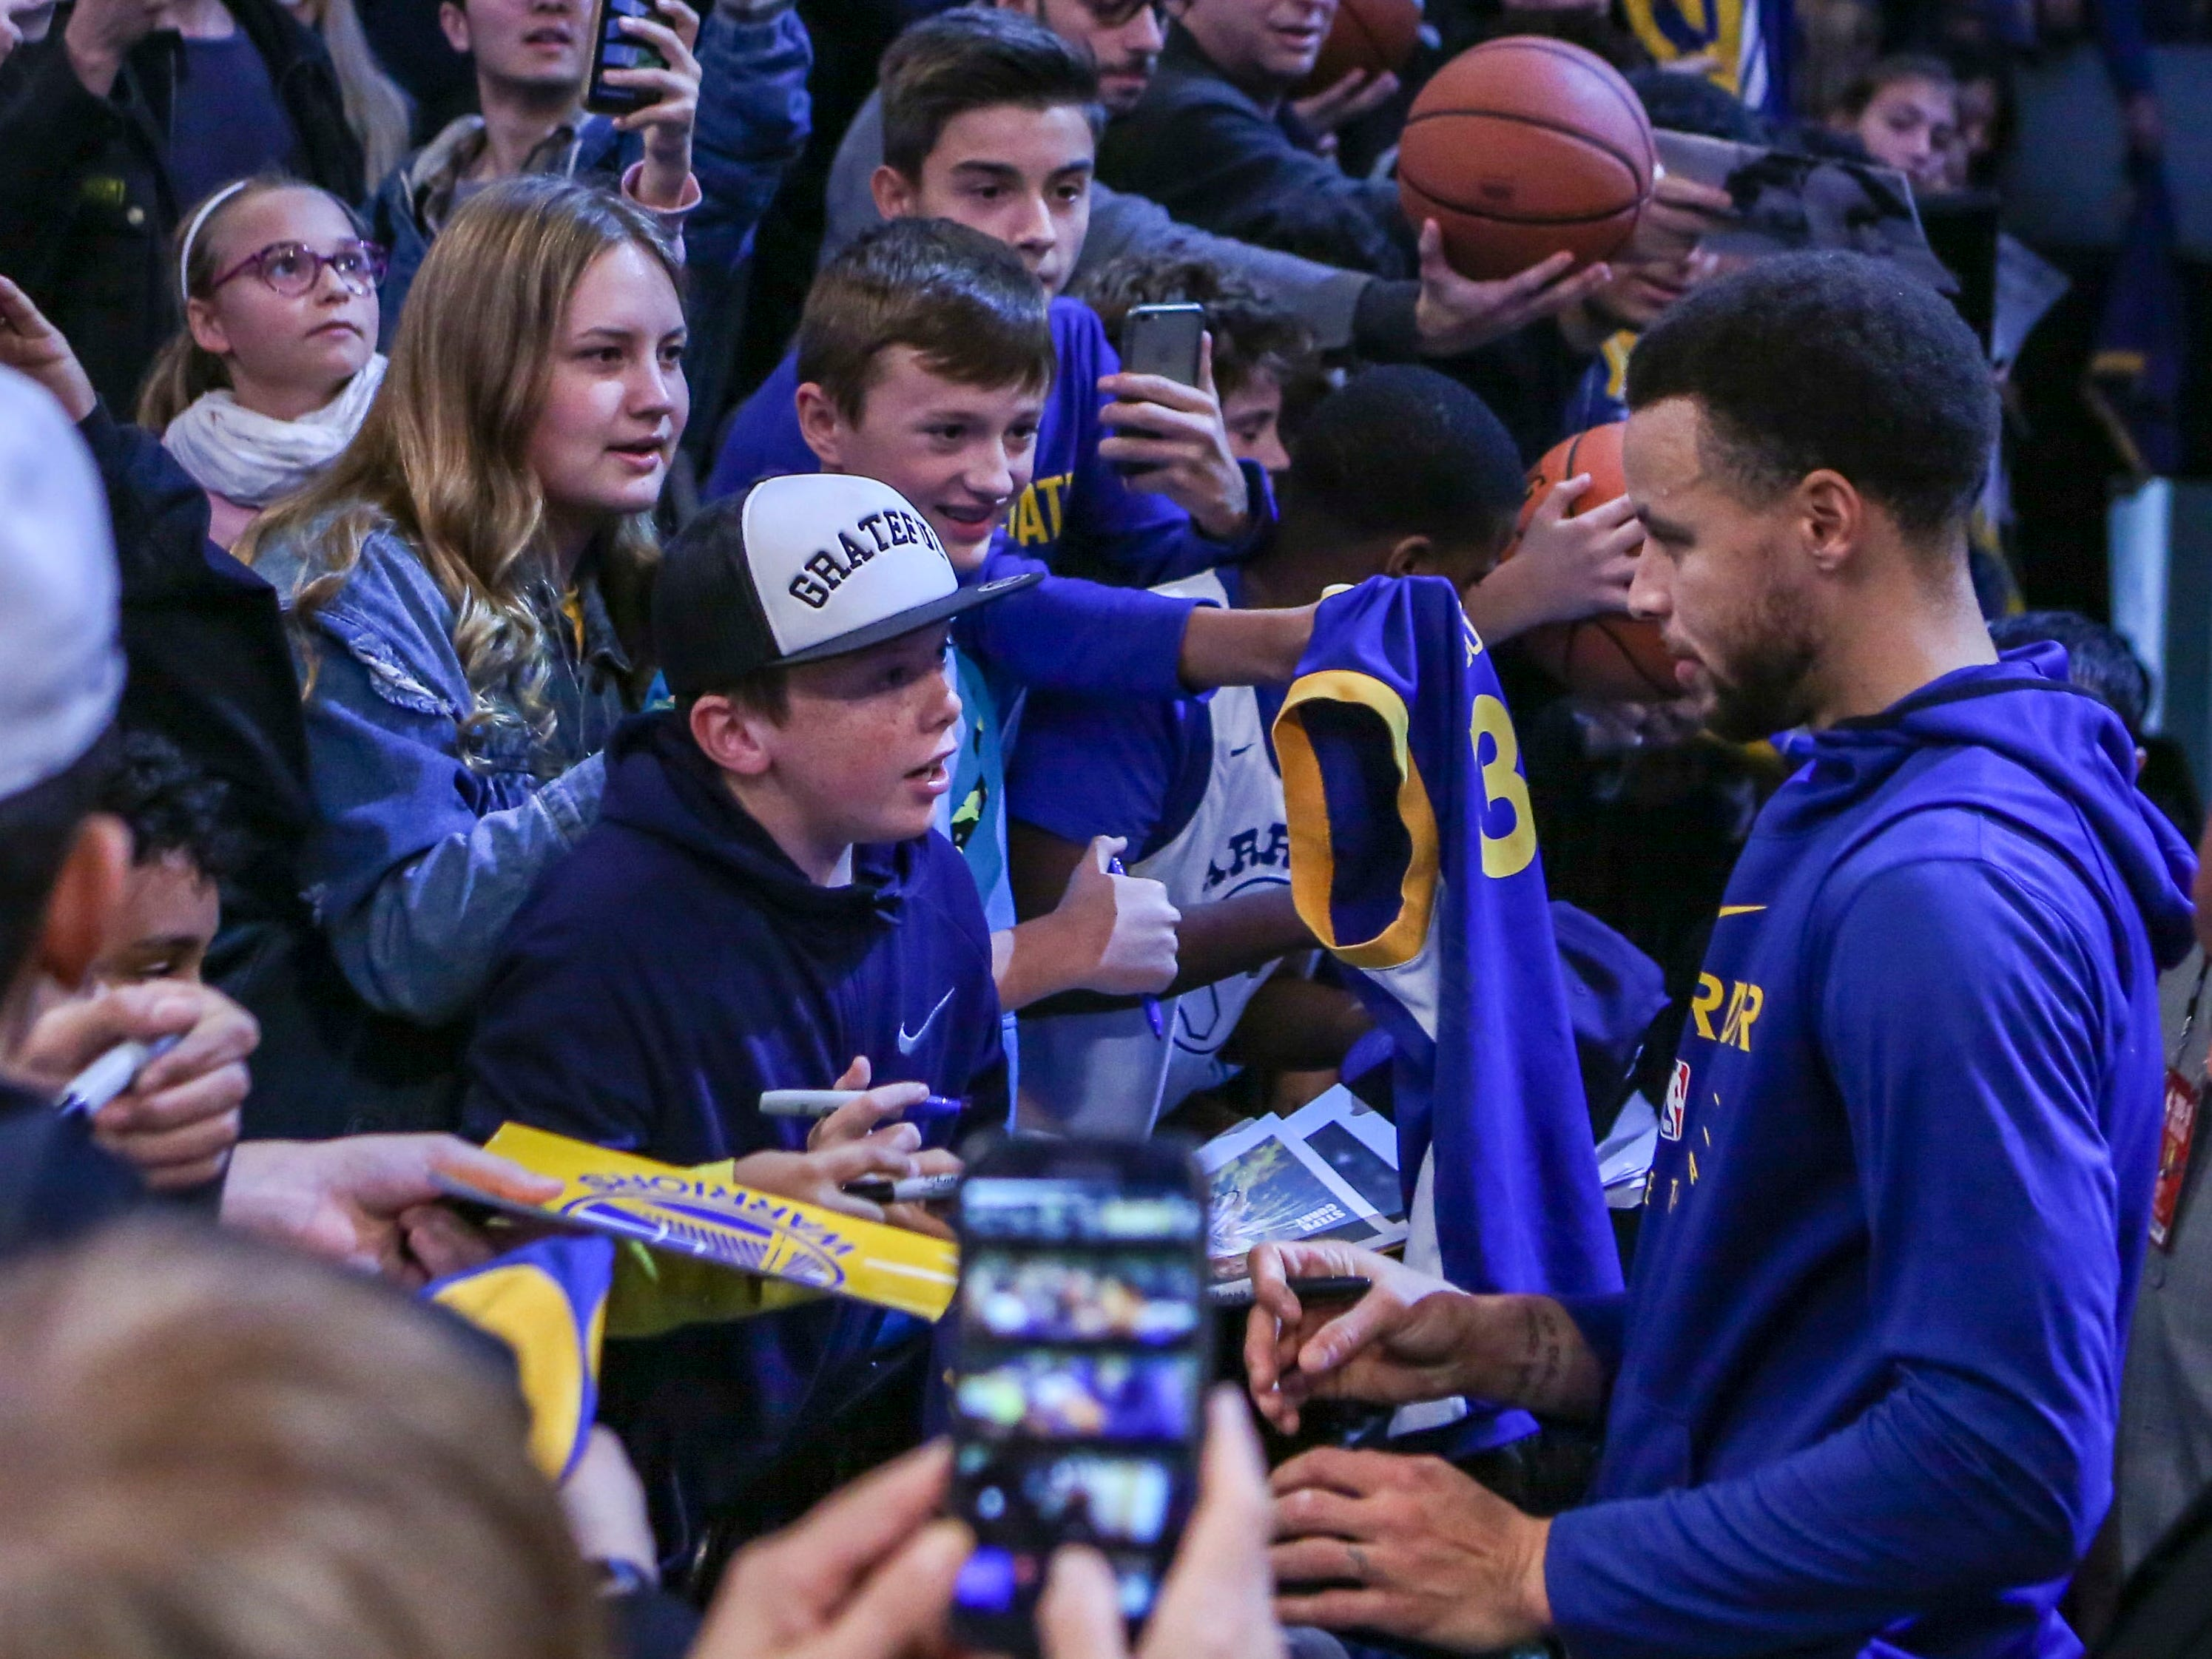 Oct. 28: Always a fan favorite, Warriors star Steph Curry signs autographs before playing the Nets in Brooklyn.